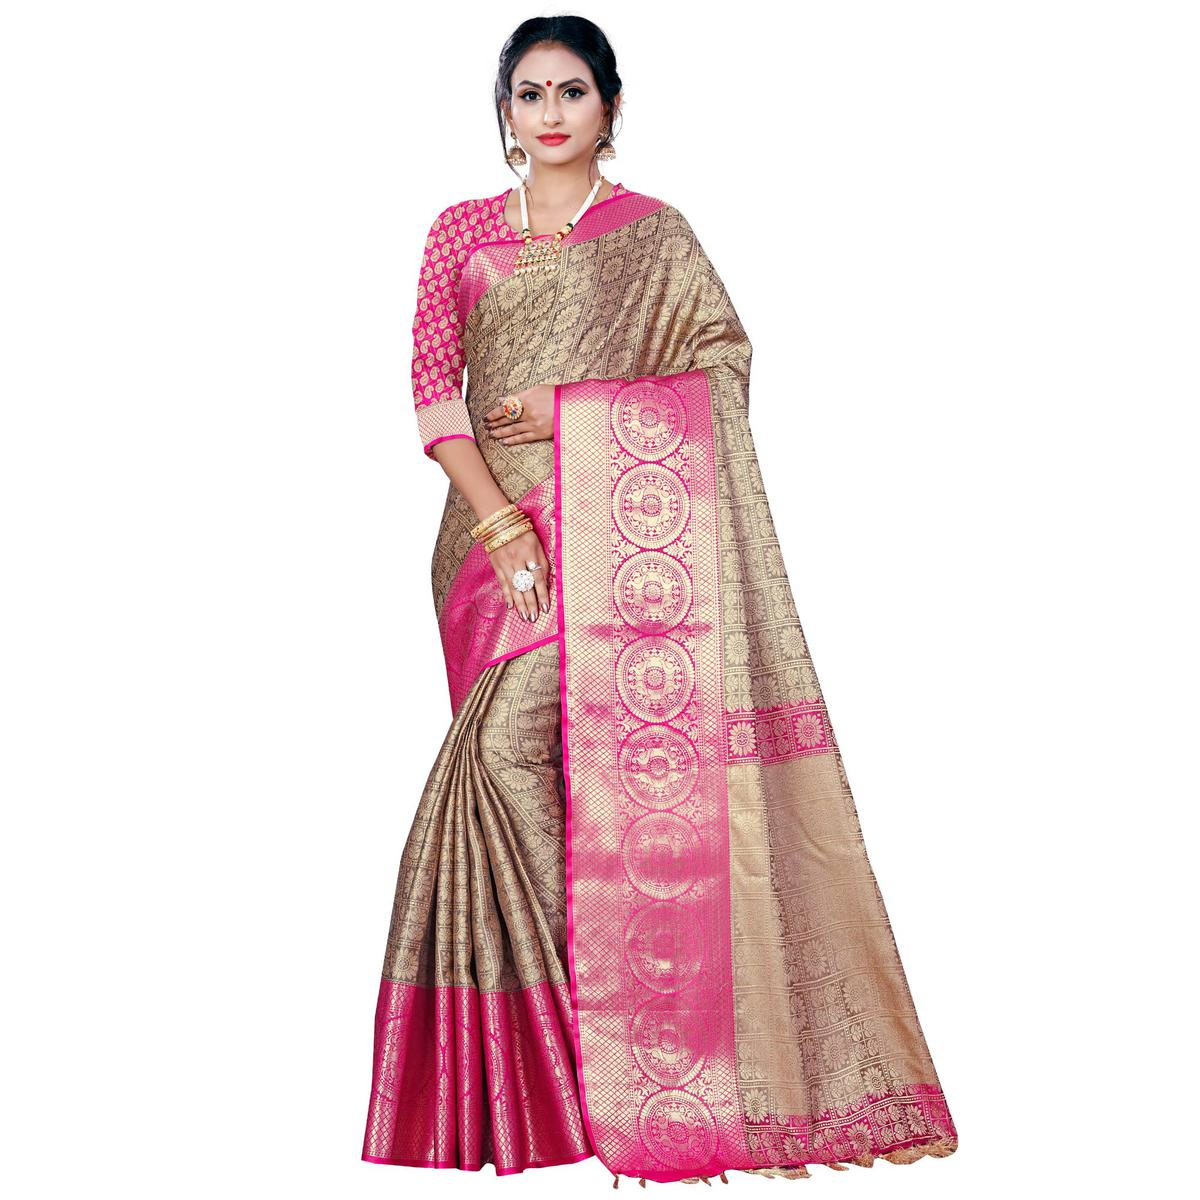 Graceful Chiku Colored Festive Wear Woven Banarasi Silk Saree